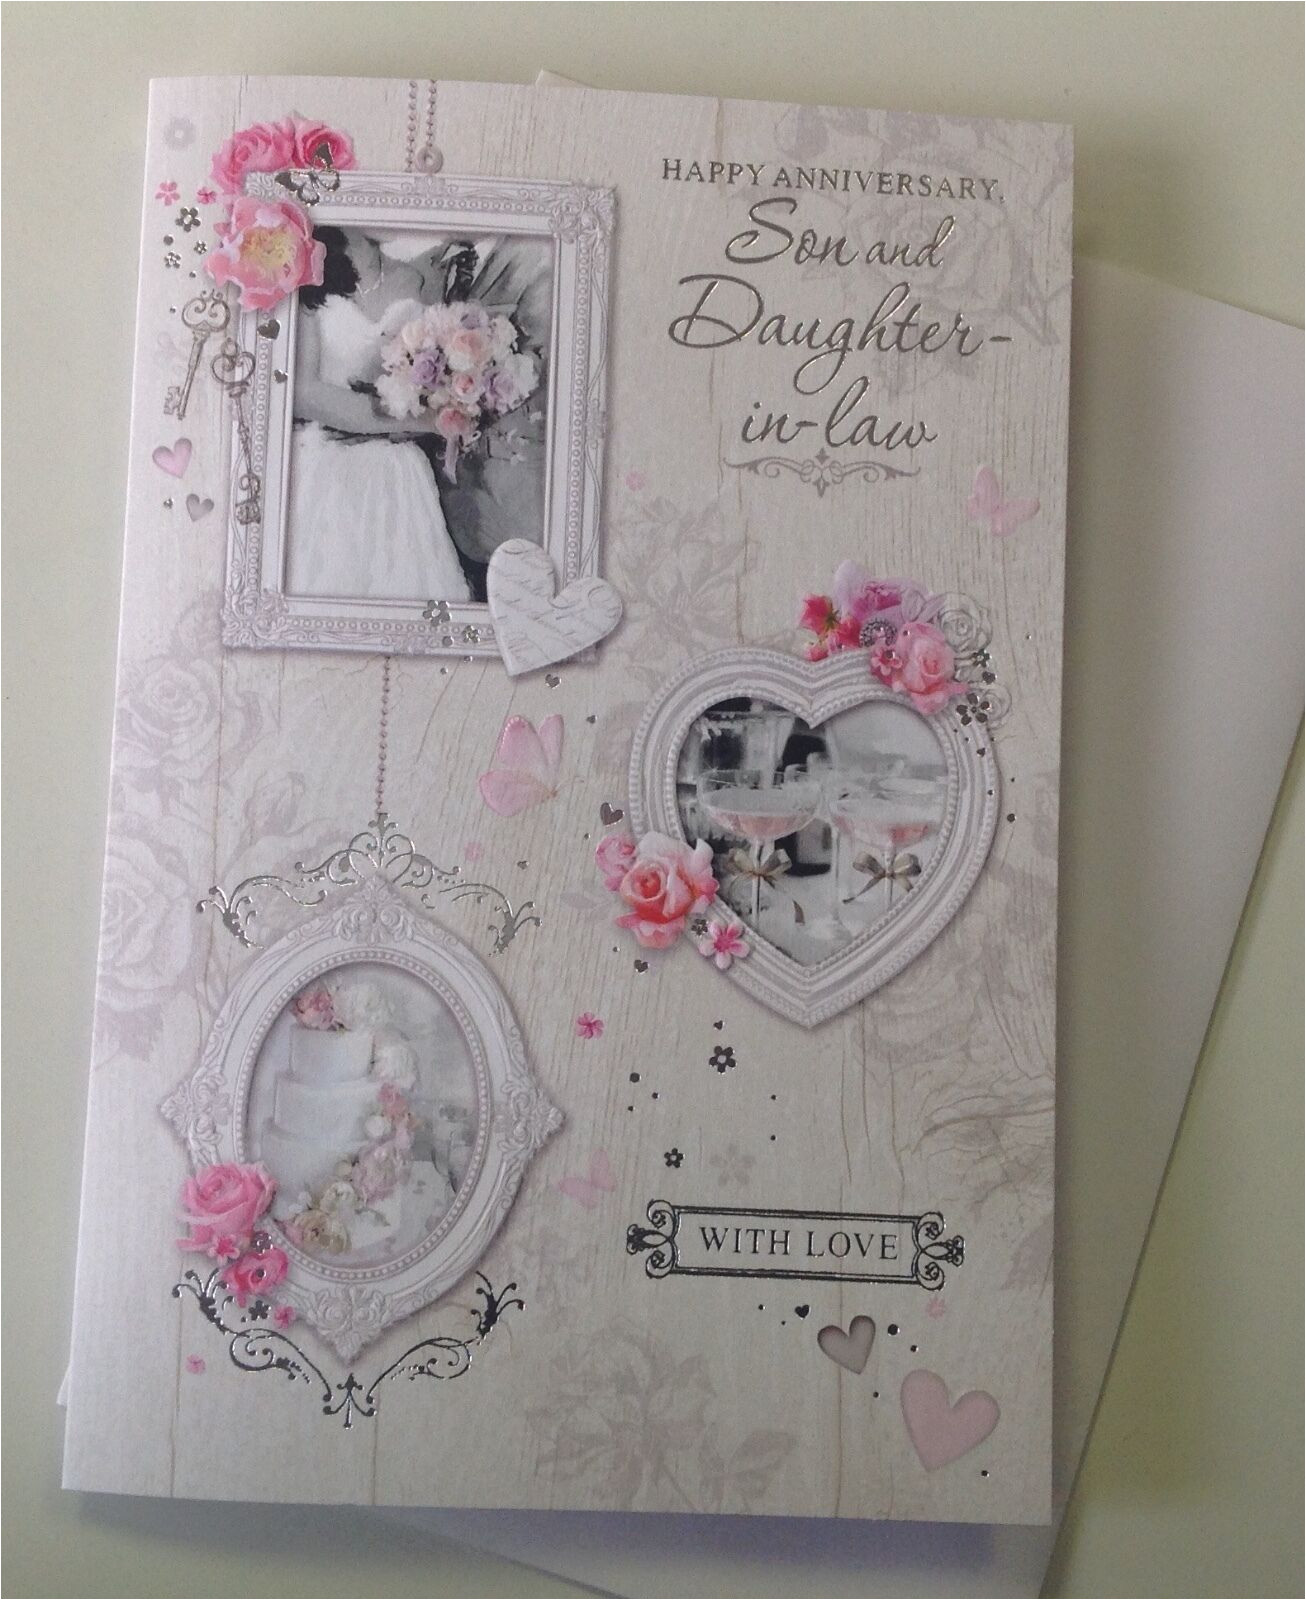 Son and Daughter In Law Anniversary Card Cards Stationery son Daughter In Law Anniversary Card